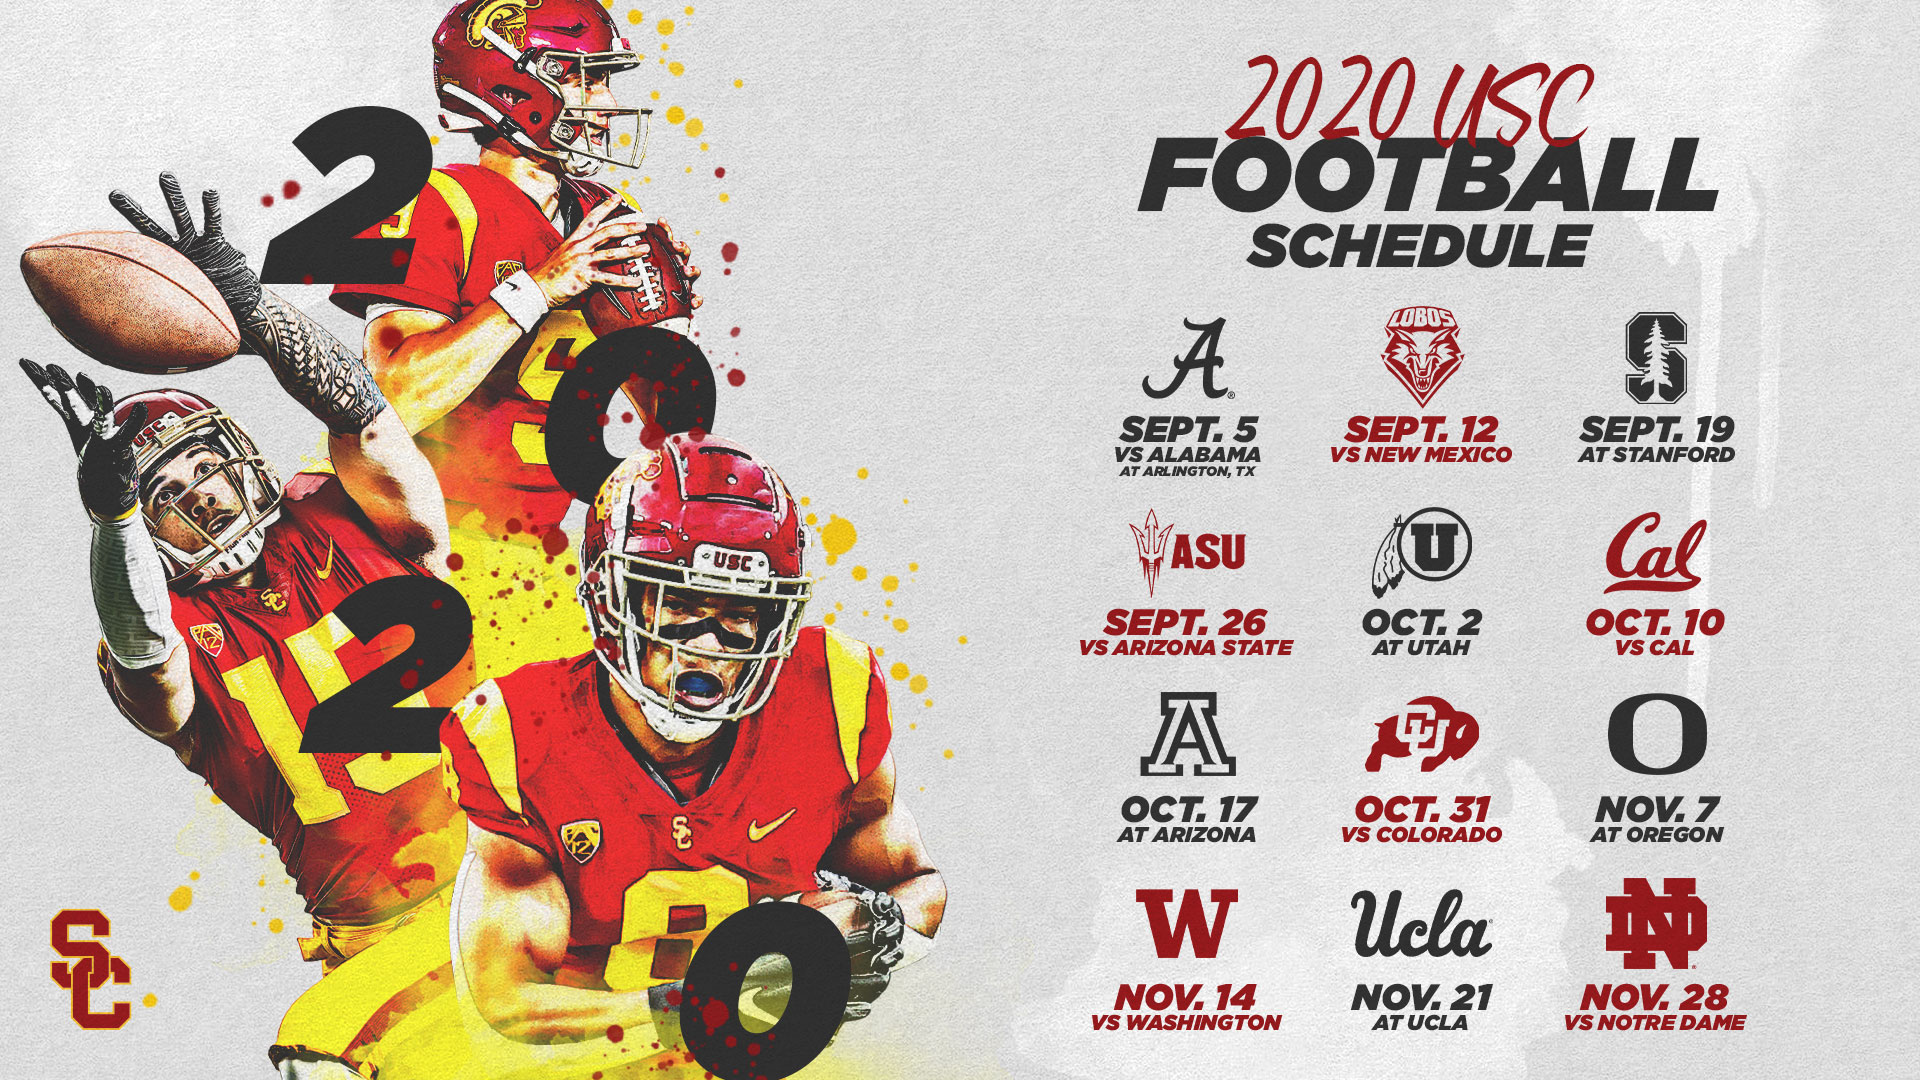 Usc S 2020 Football Schedule Announced Usc Athletics